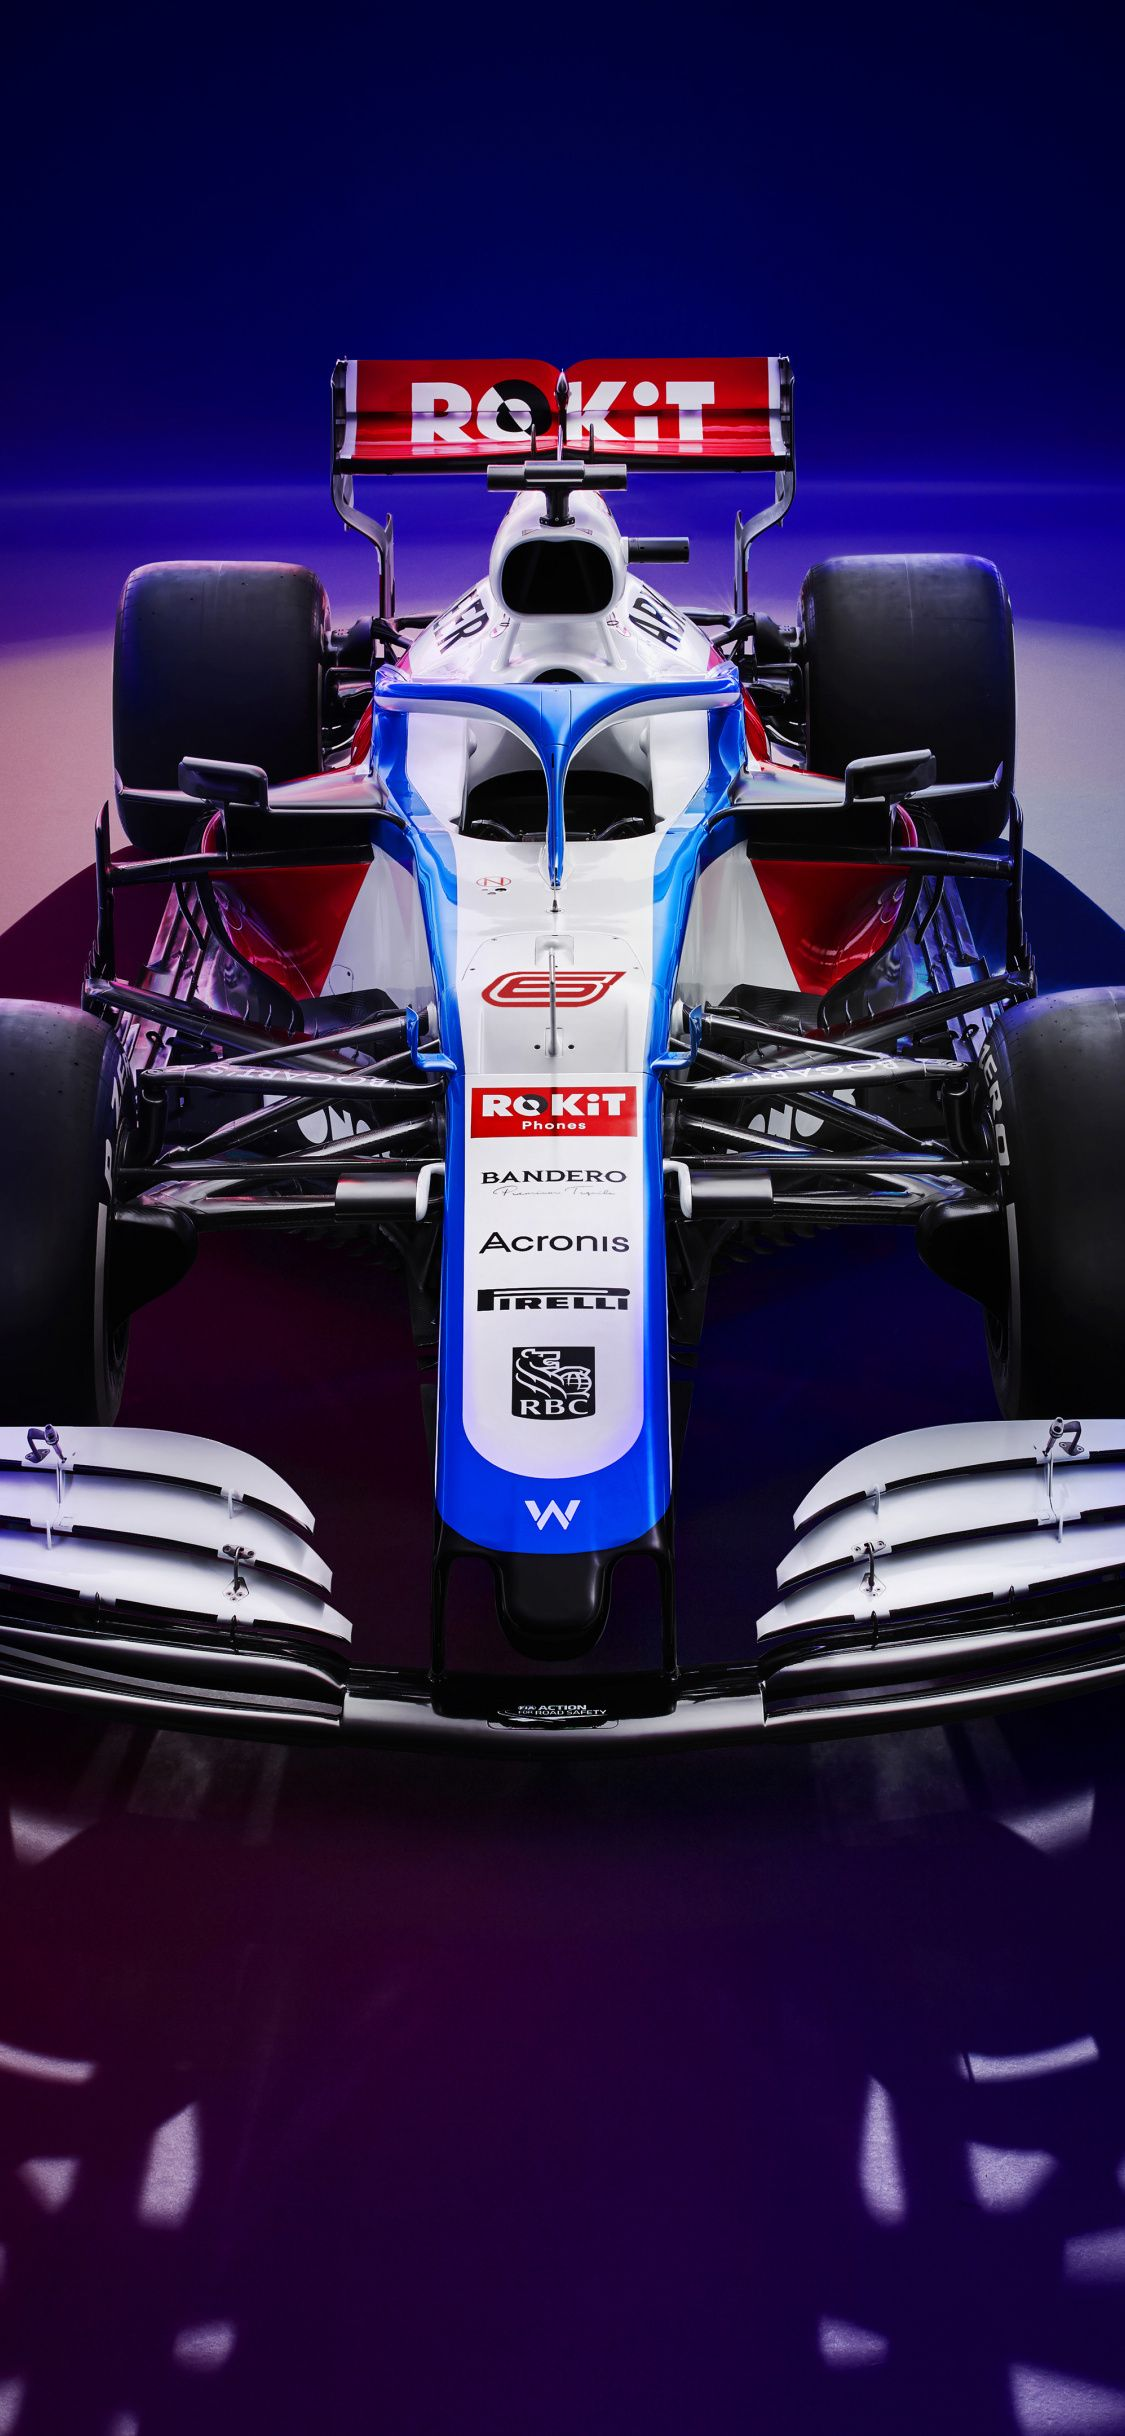 1125x2436 Williams Fw43 2020 F1 Car Wallpaper In 2020 Williams F1 Luxury Car Photos Car